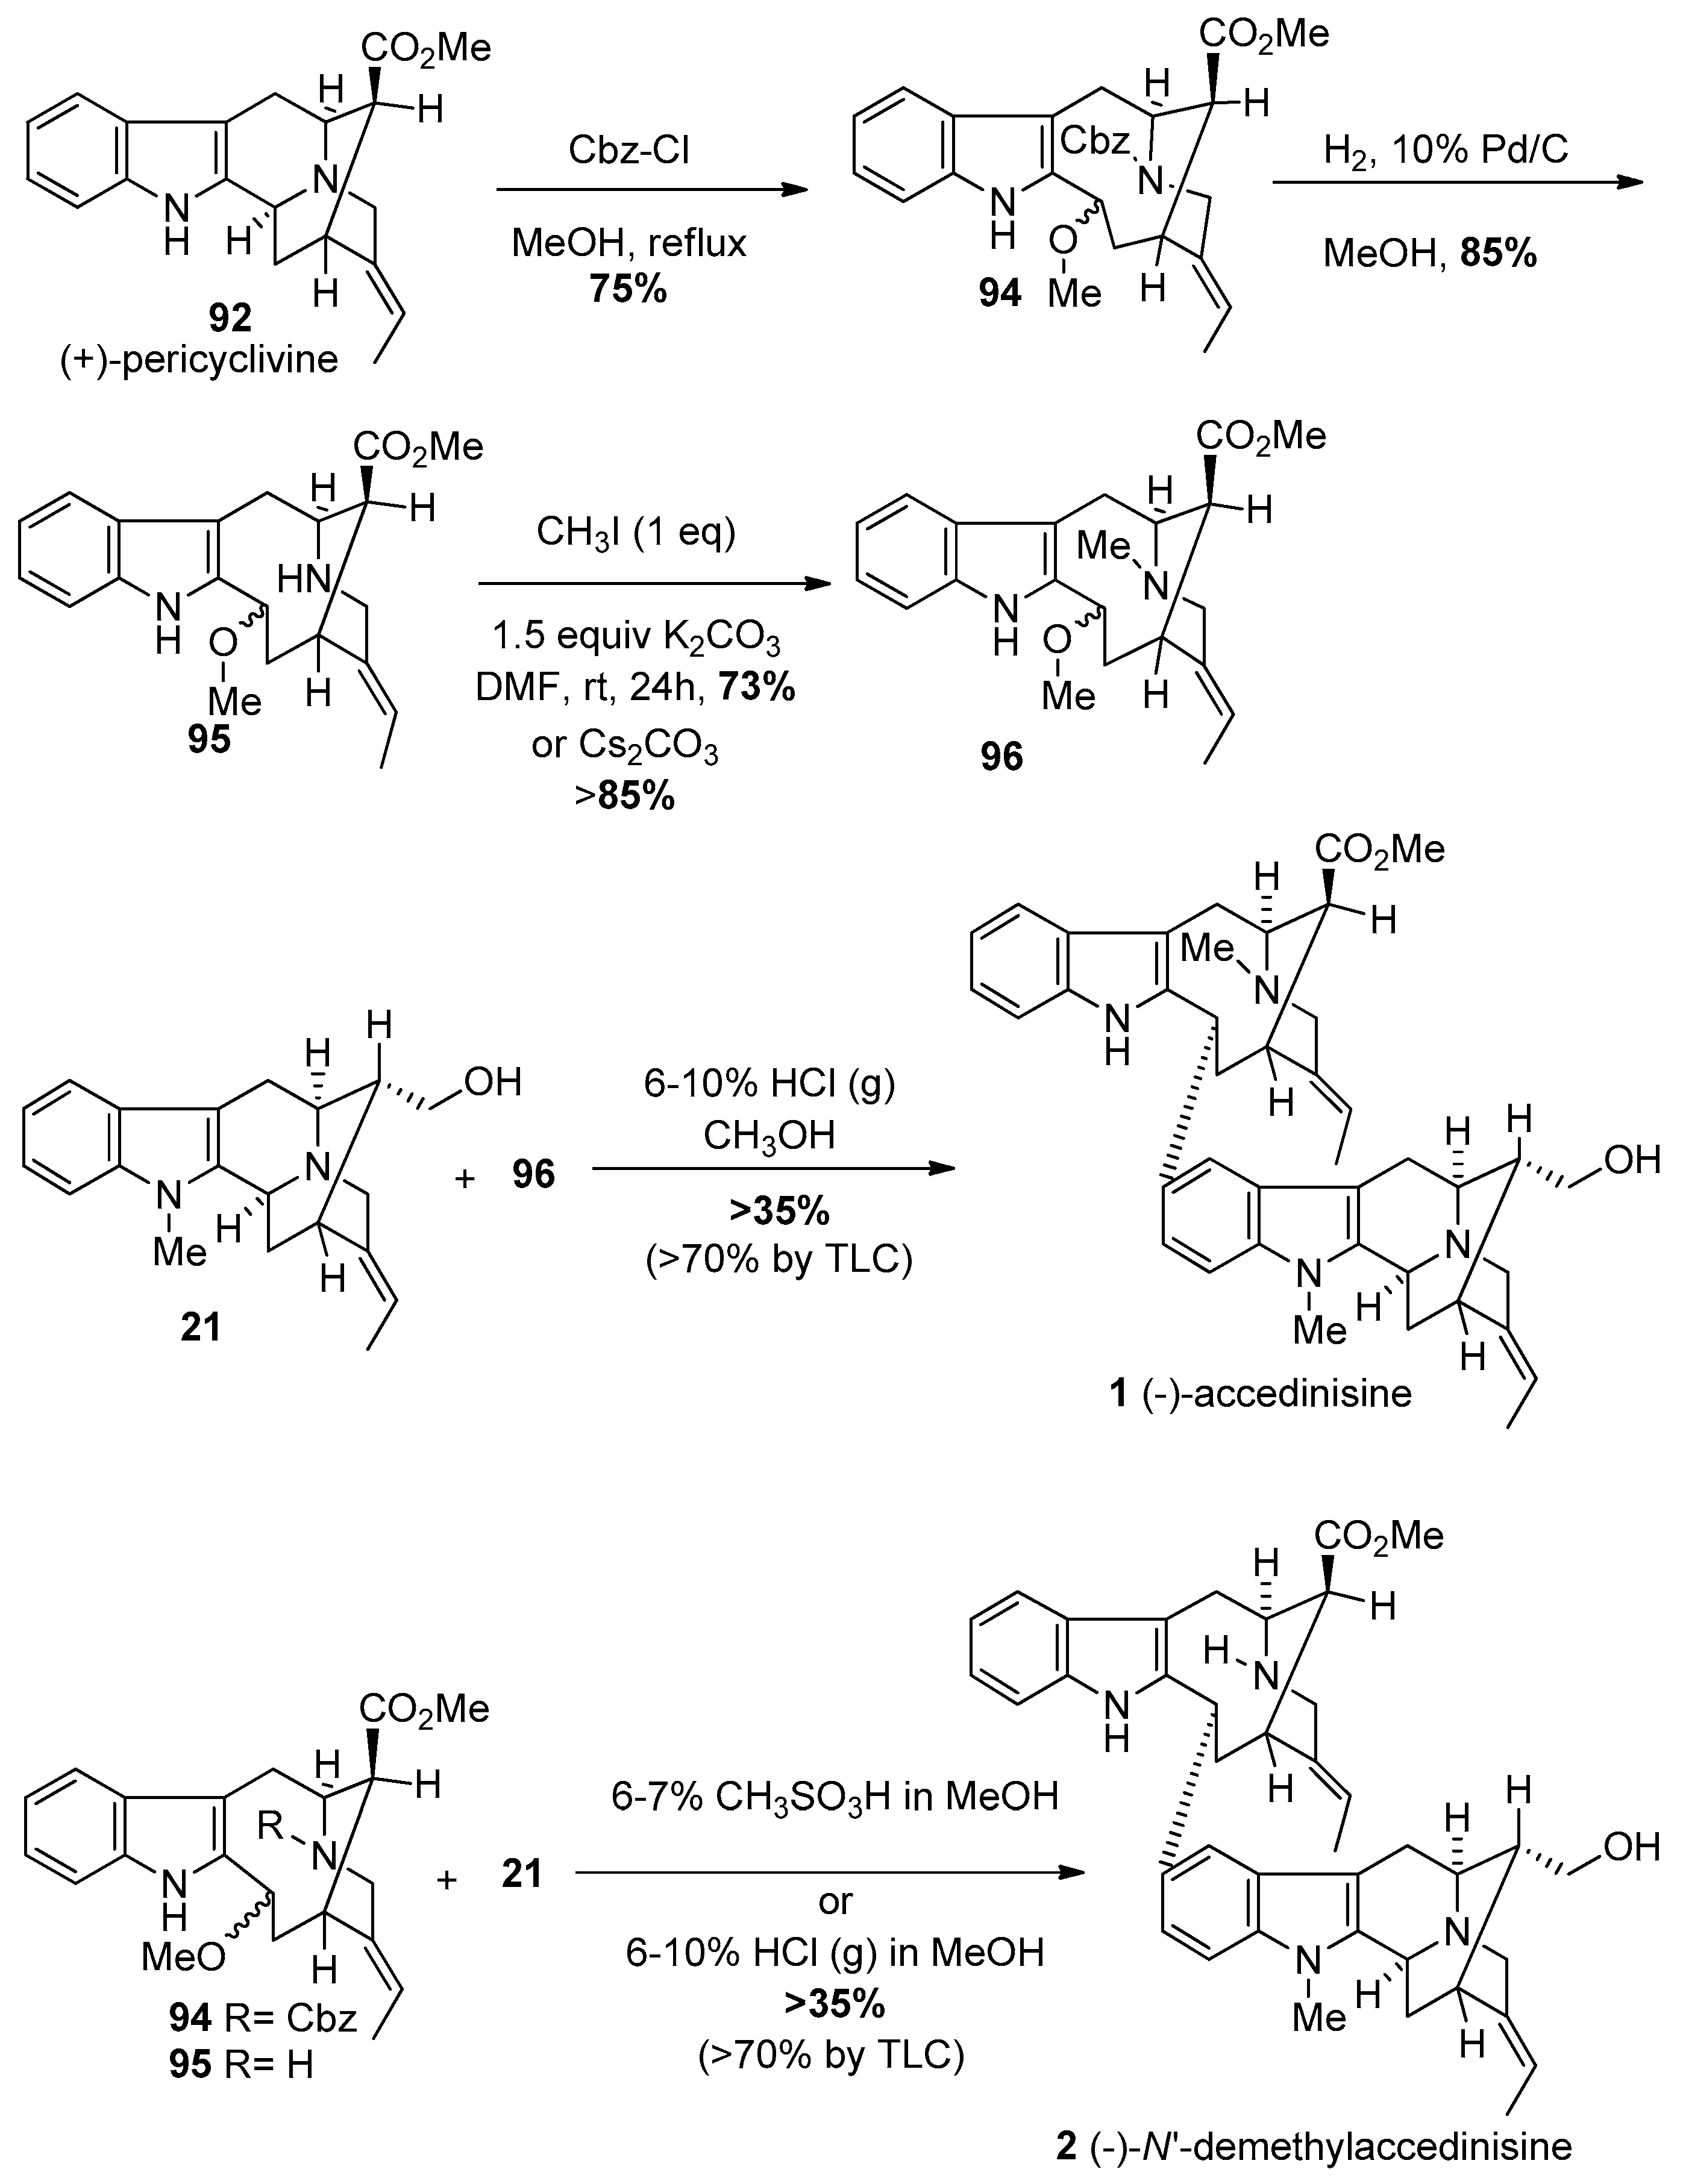 Molecules 21 01525 sch009